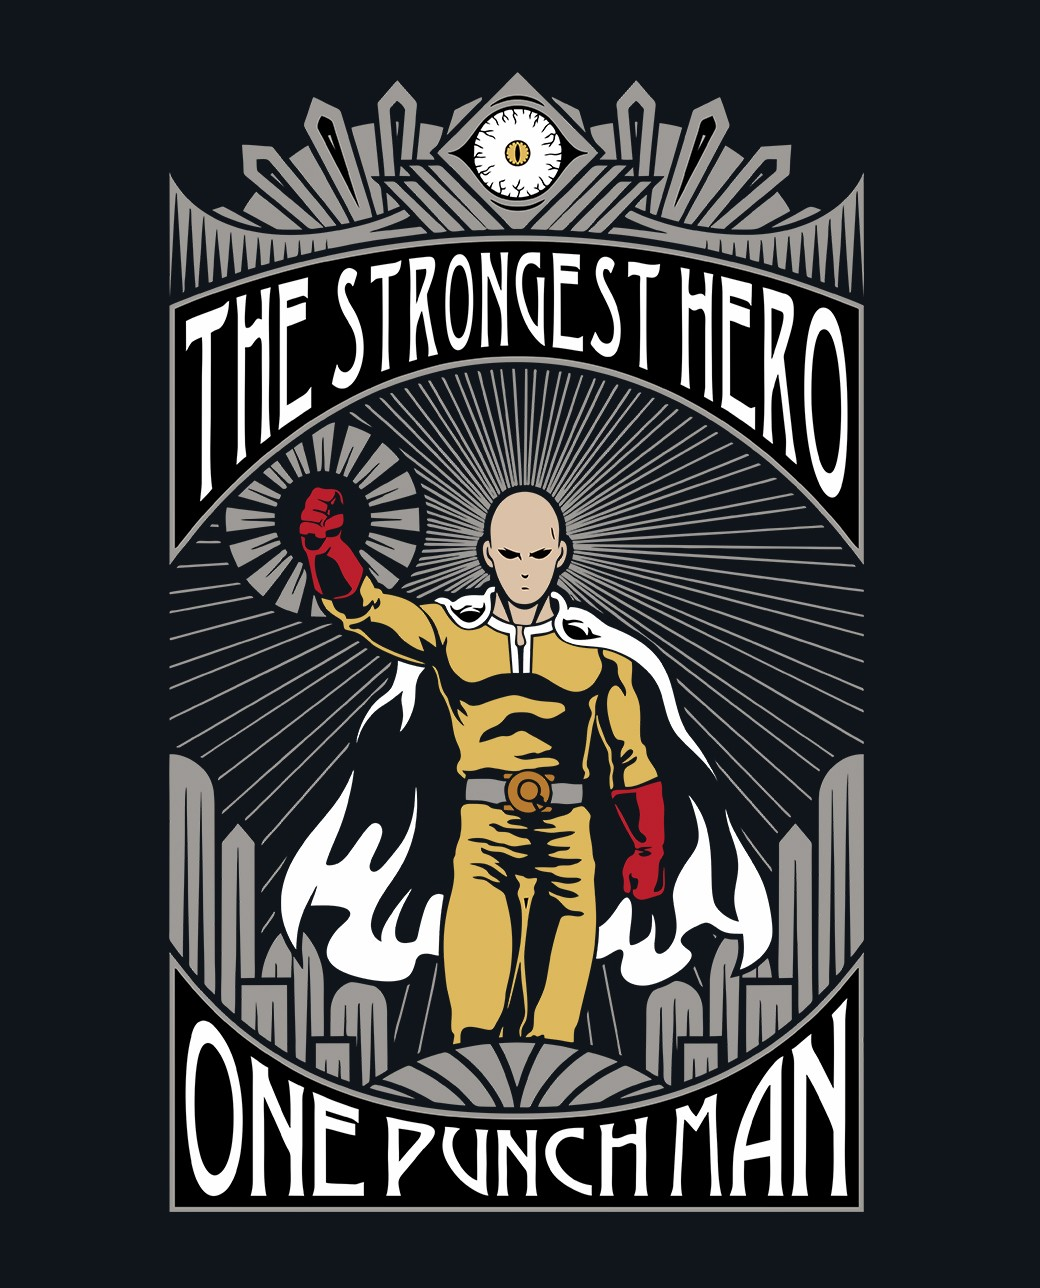 THE STRONGEST HERO – ONE PUNCH MAN